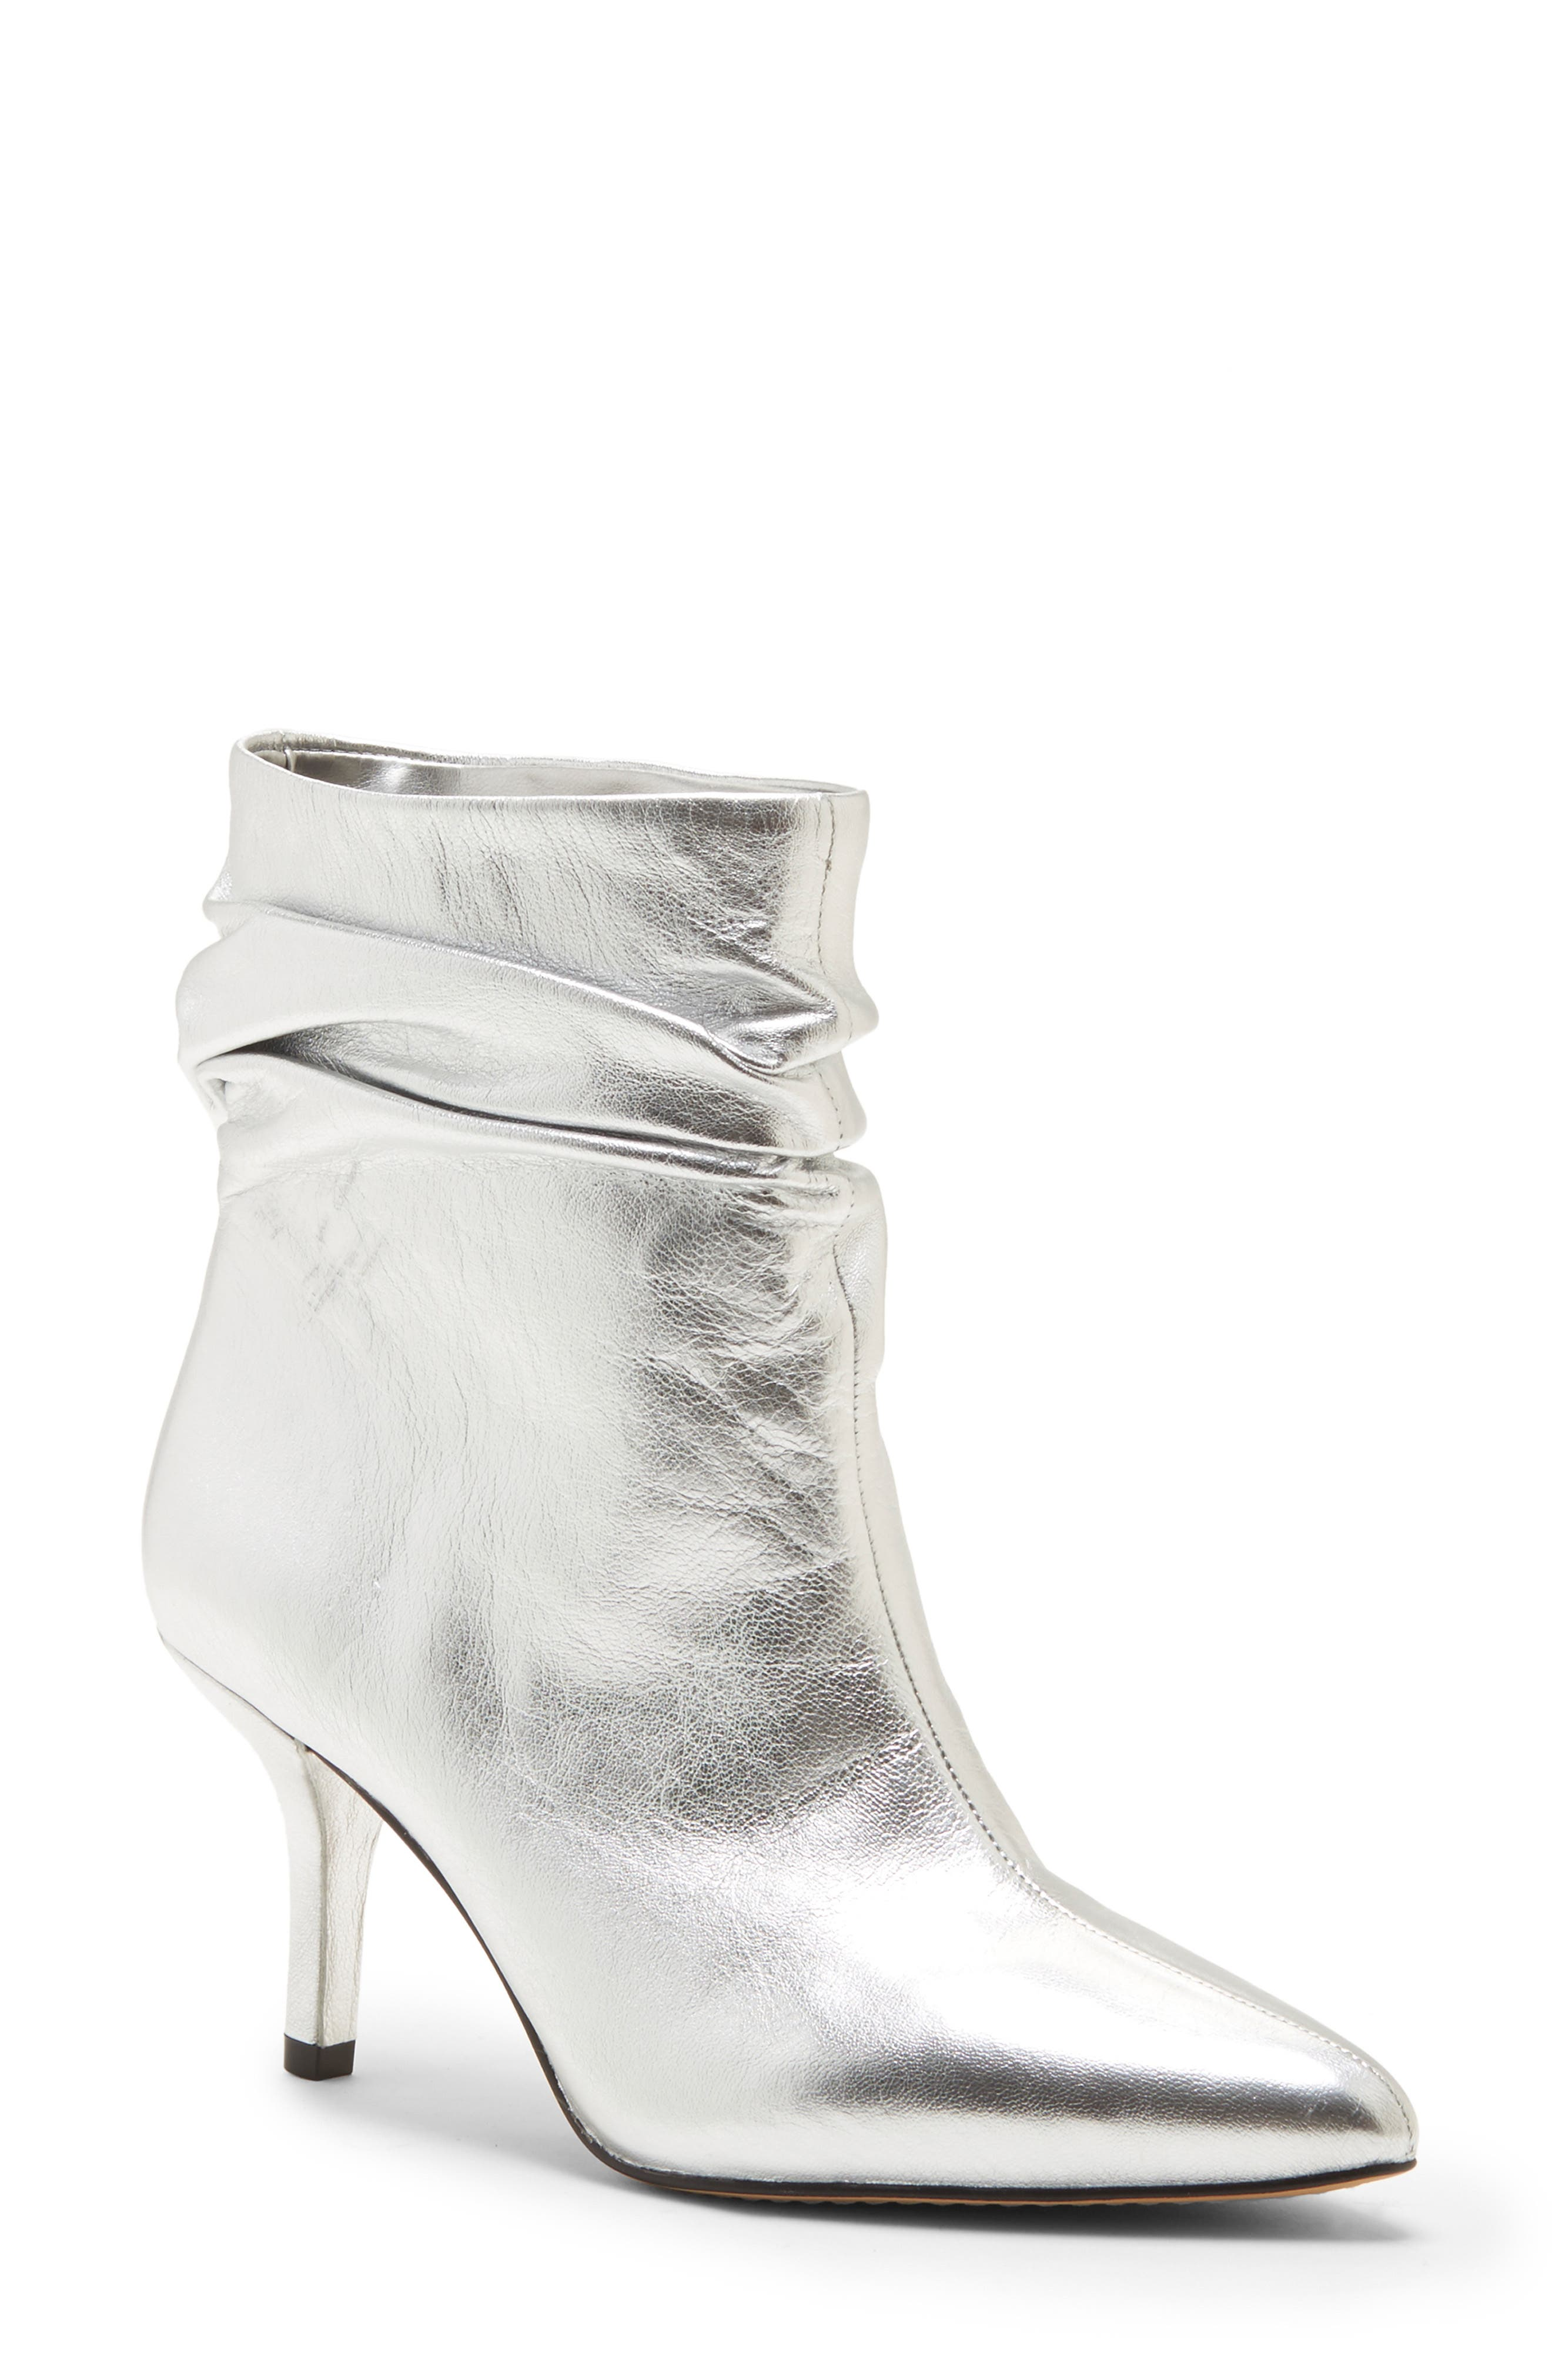 VINCE CAMUTO Abrianna Bootie, Main, color, GLEAMING SILVER LEATHER